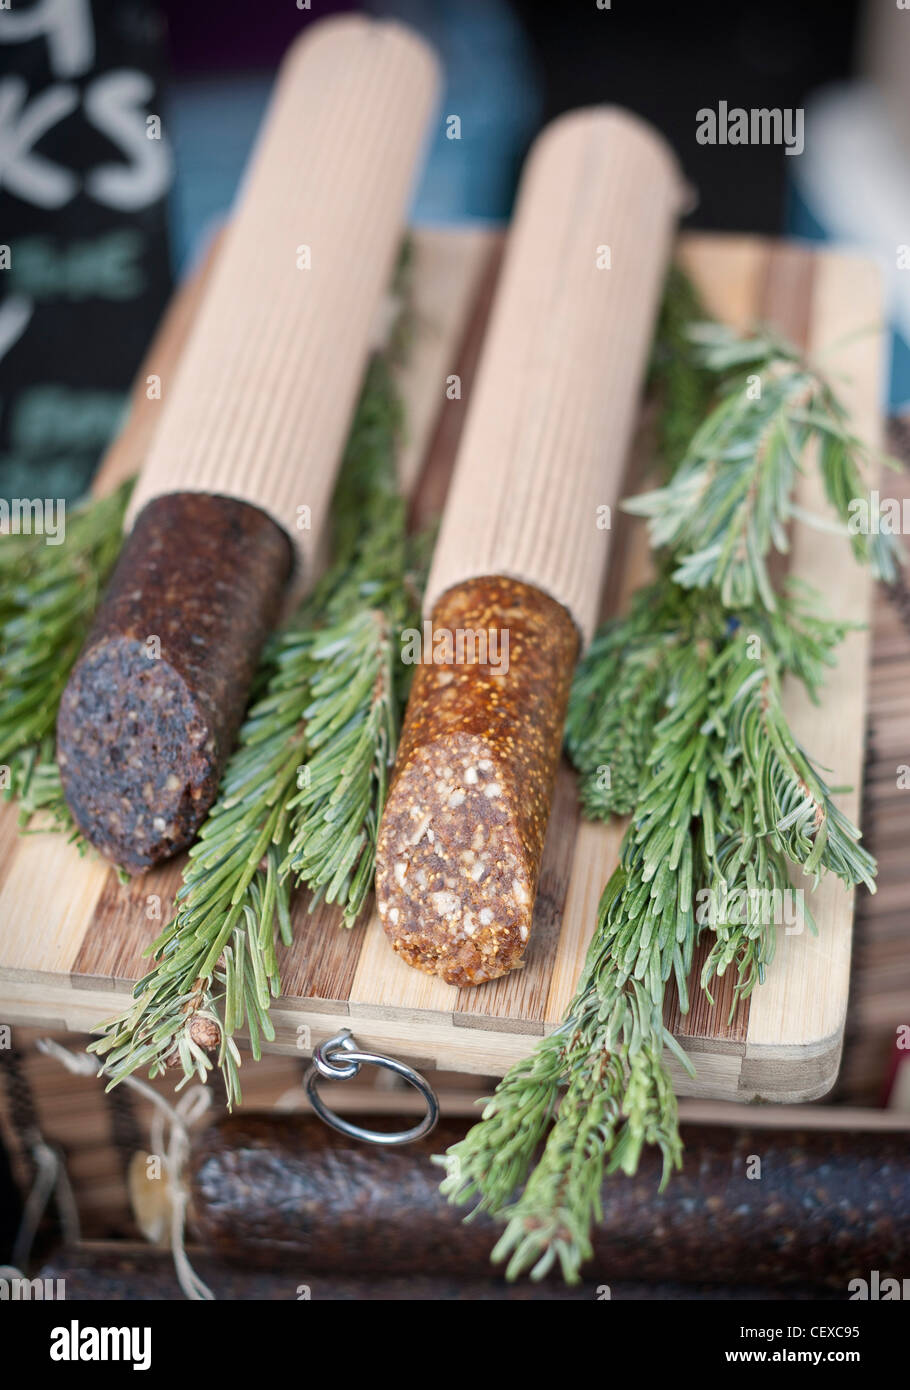 Fig and walnut salami beautifully presented on a market stall - Stock Image